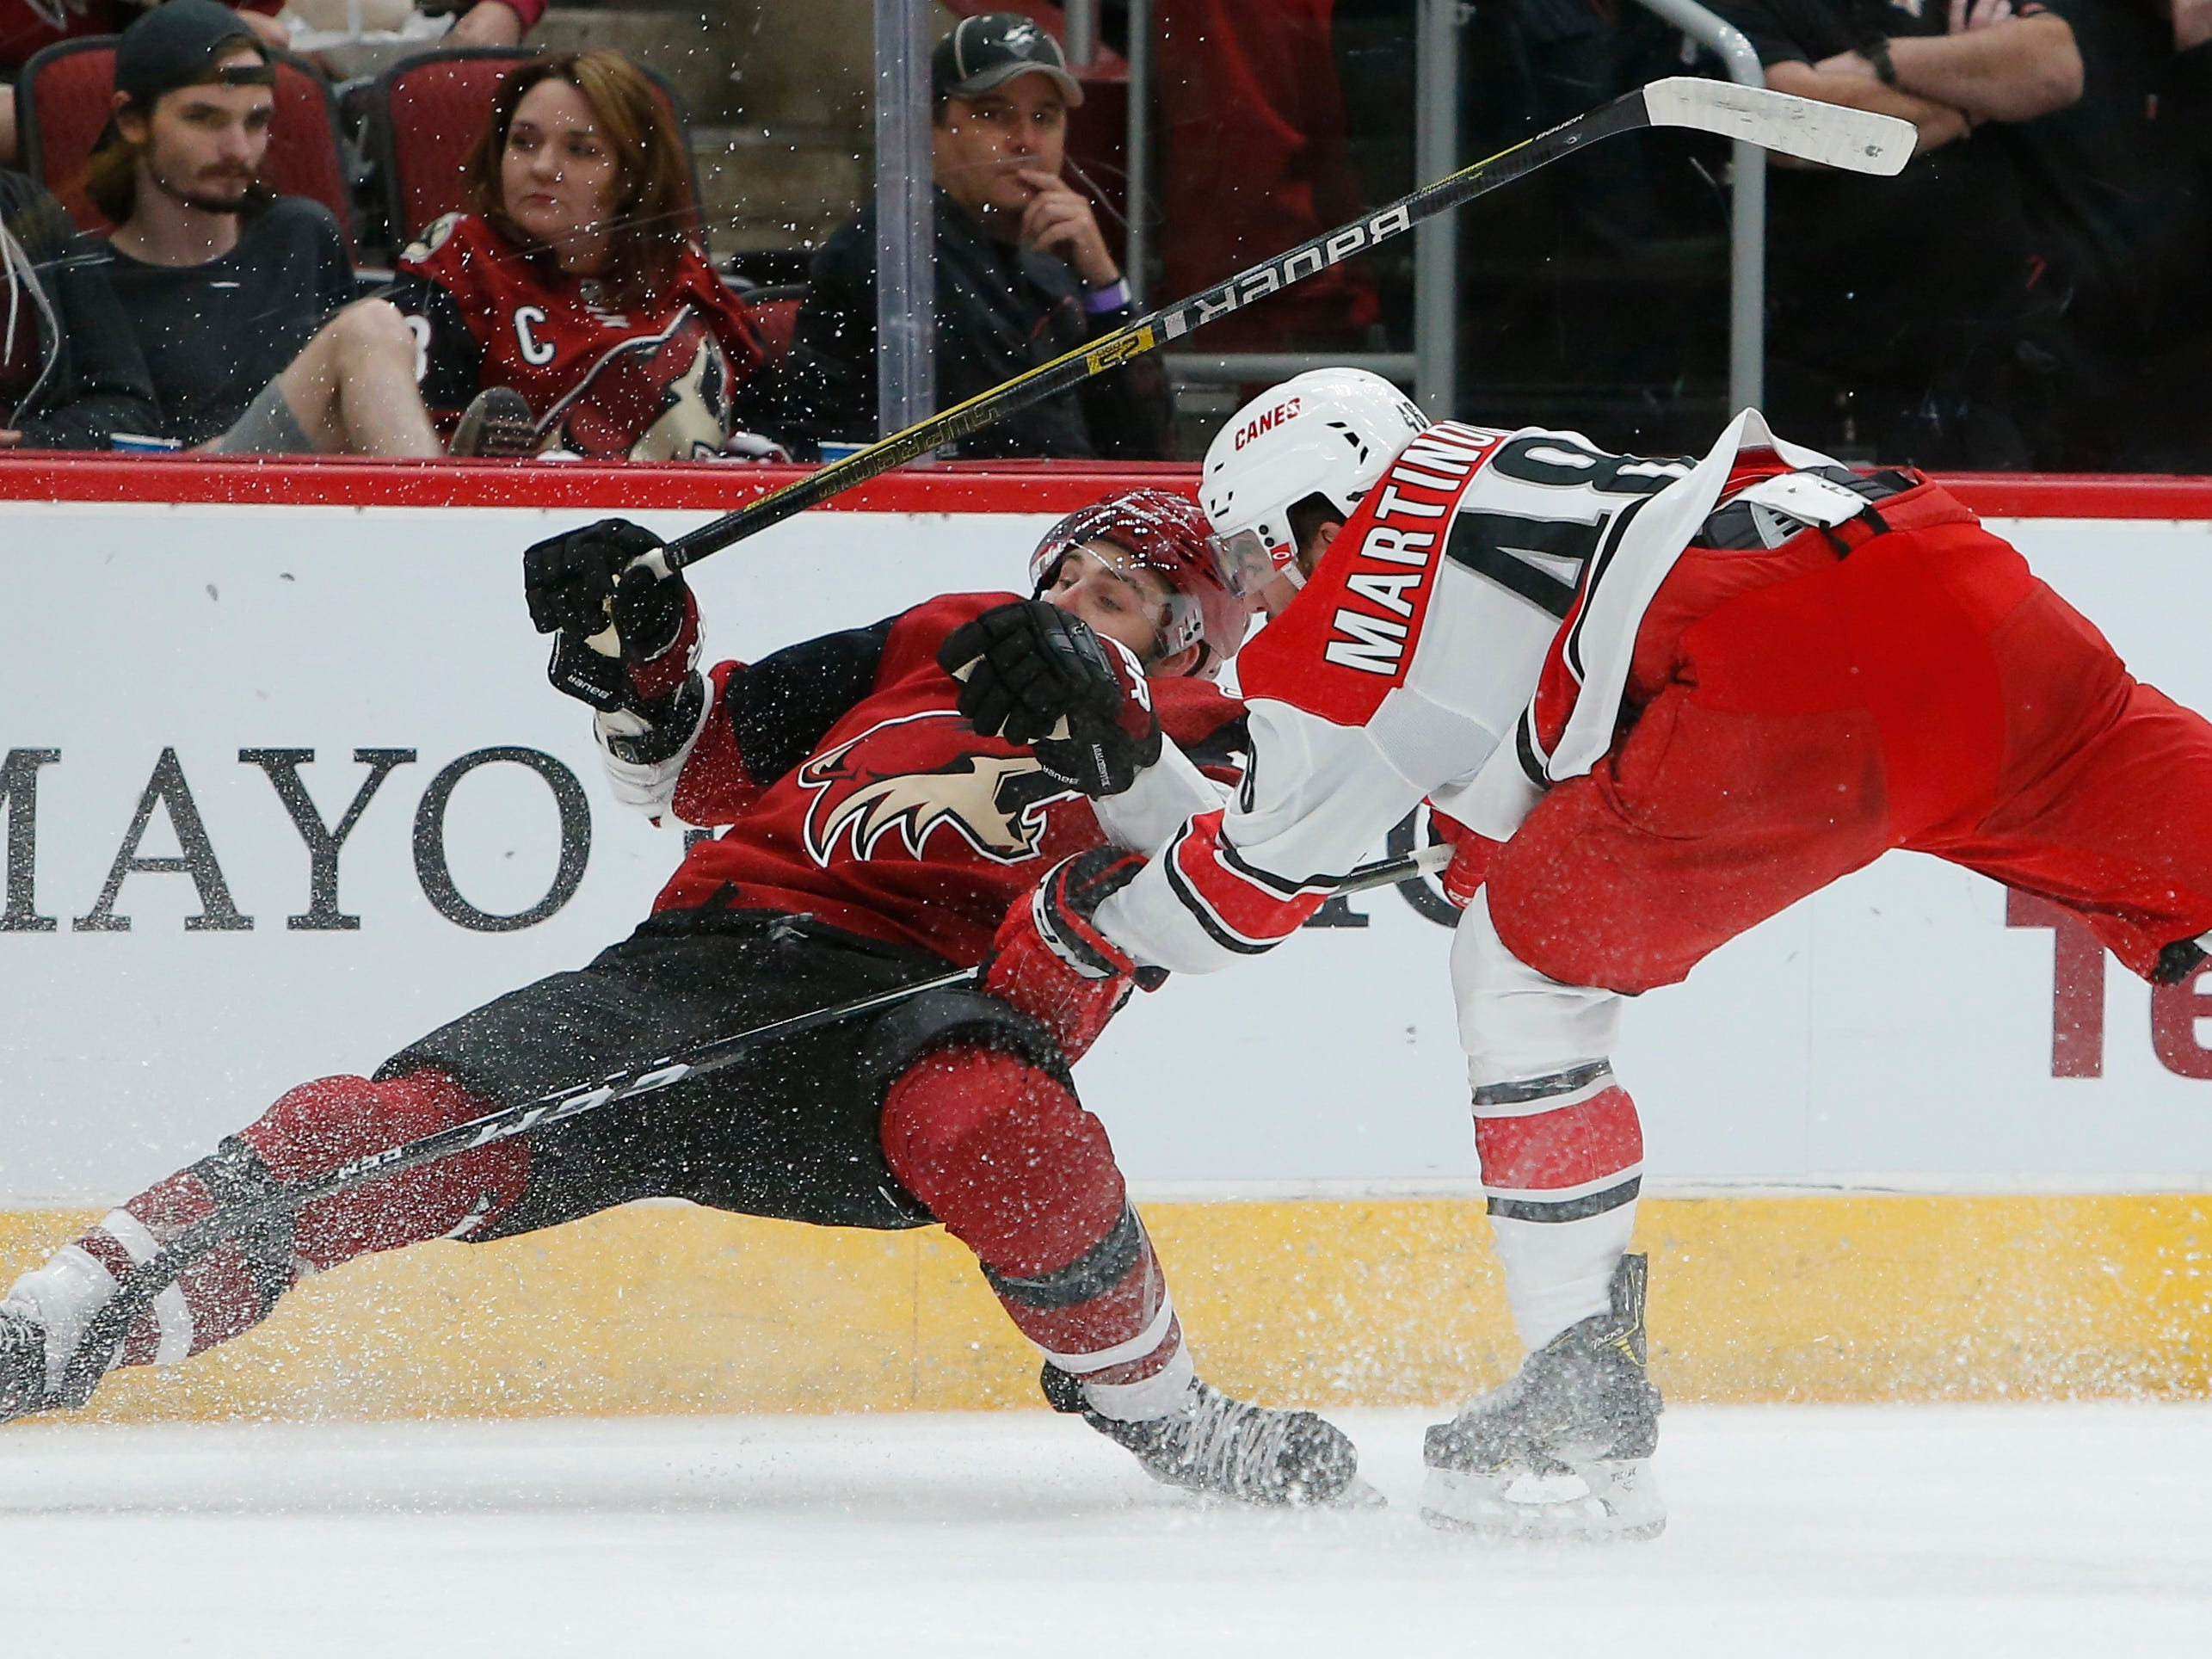 Carolina Hurricanes left wing Jordan Martinook (48) drags down Arizona Coyotes center Alex Galchenyuk for a tripping penalty during the first period of an NHL hockey game Friday, Nov. 2, 2018, in Glendale, Ariz. (AP Photo/Rick Scuteri)